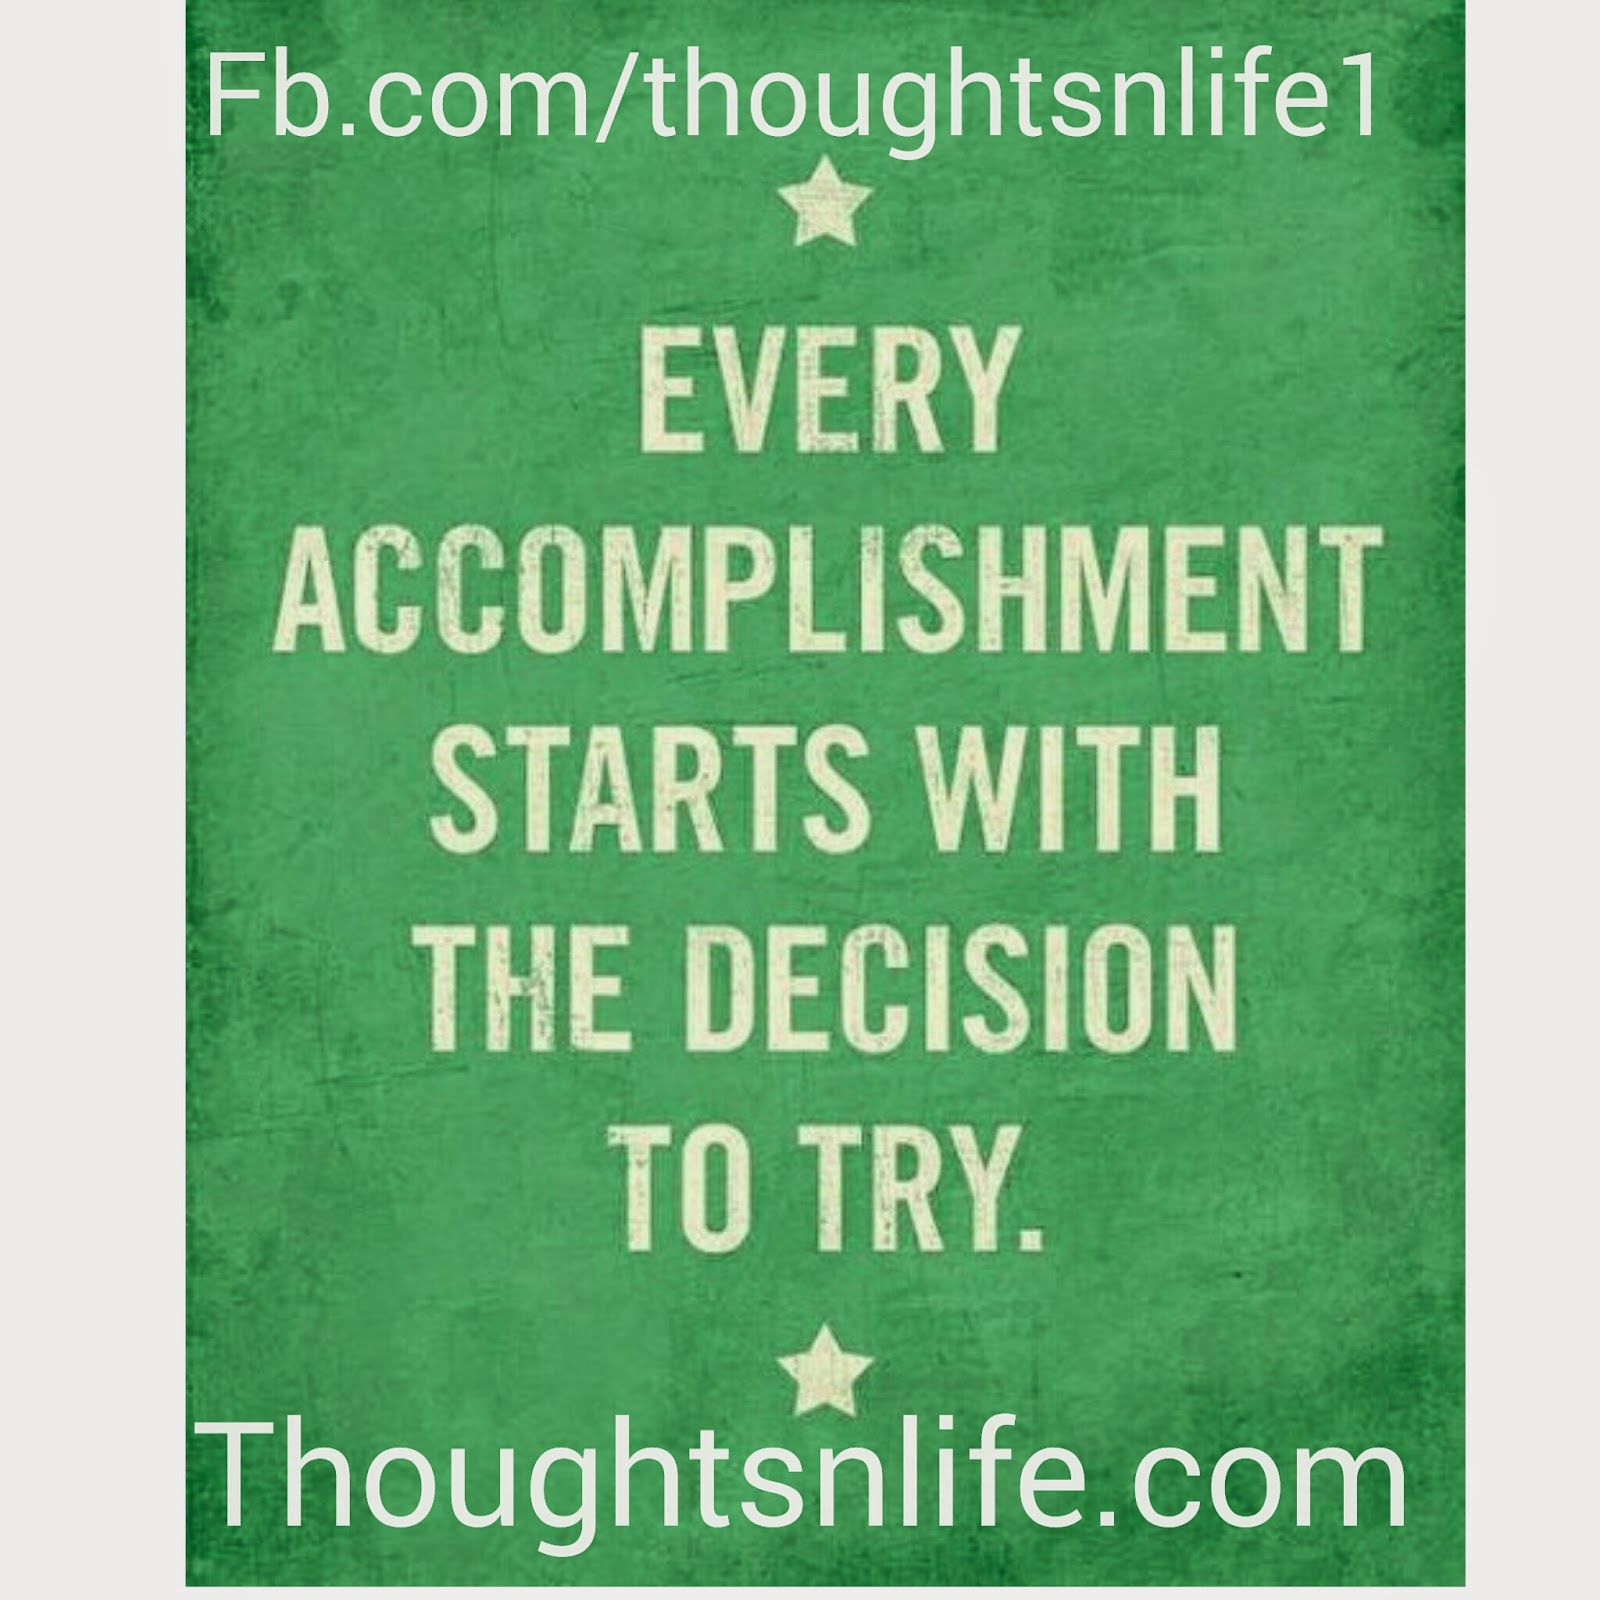 thoughtsnlife, Every accomplishment starts with decision to try, inspirational quotes